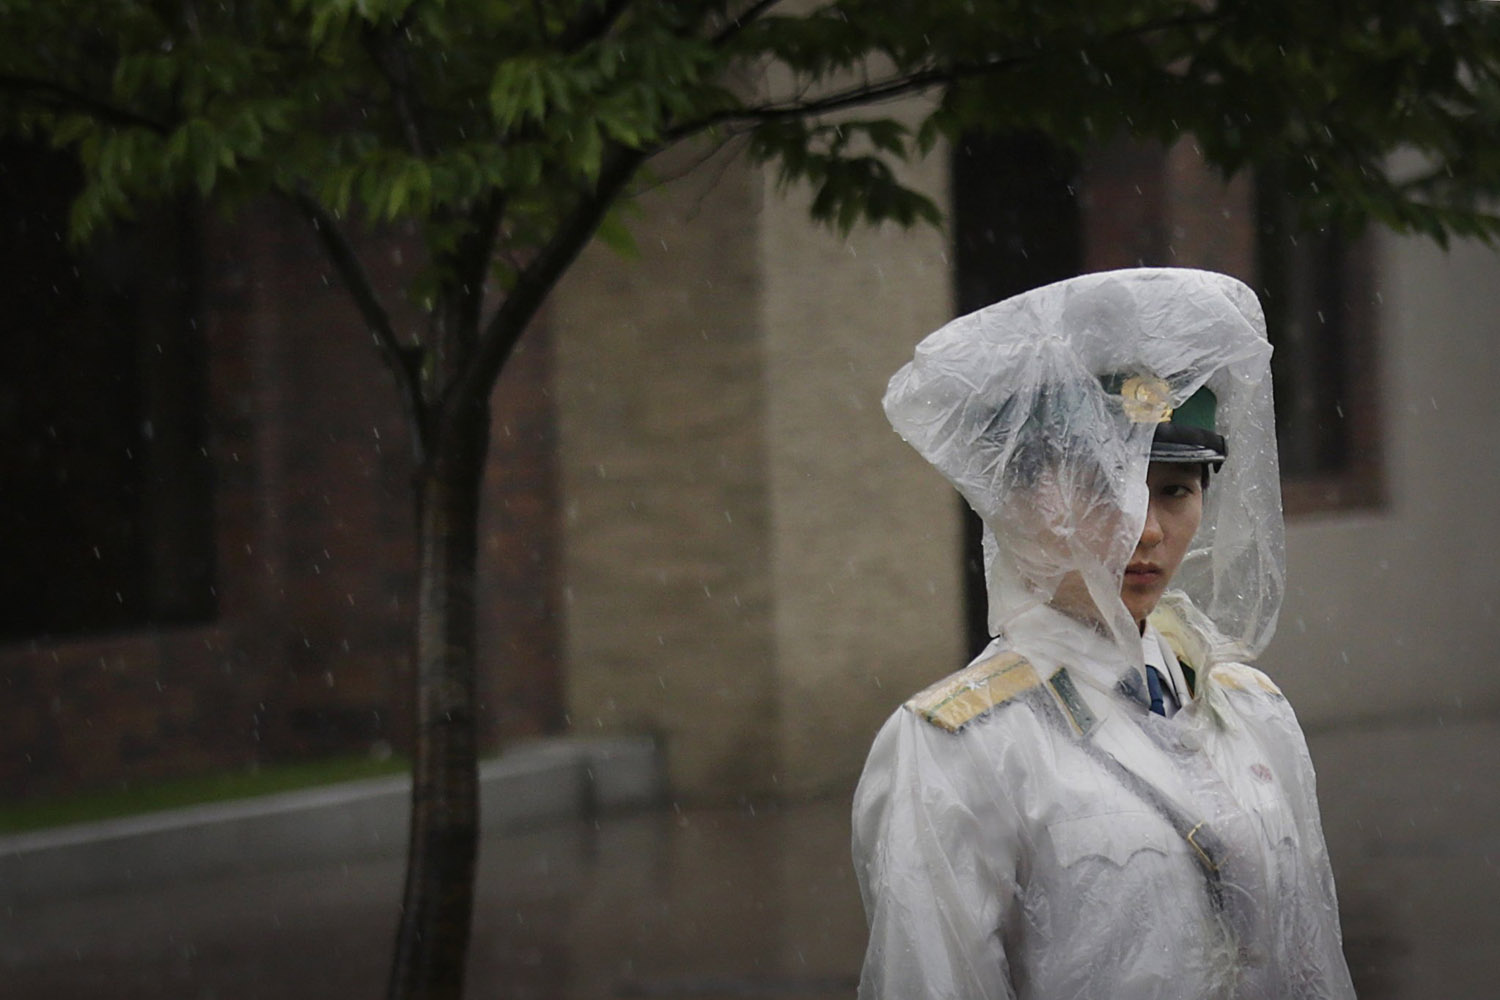 Jul. 25, 2014. A traffic controller stands in her rain gear in Pyongyang, North Korea. A typhoon was approaching North Korea on Friday as the country entered its rainy season.